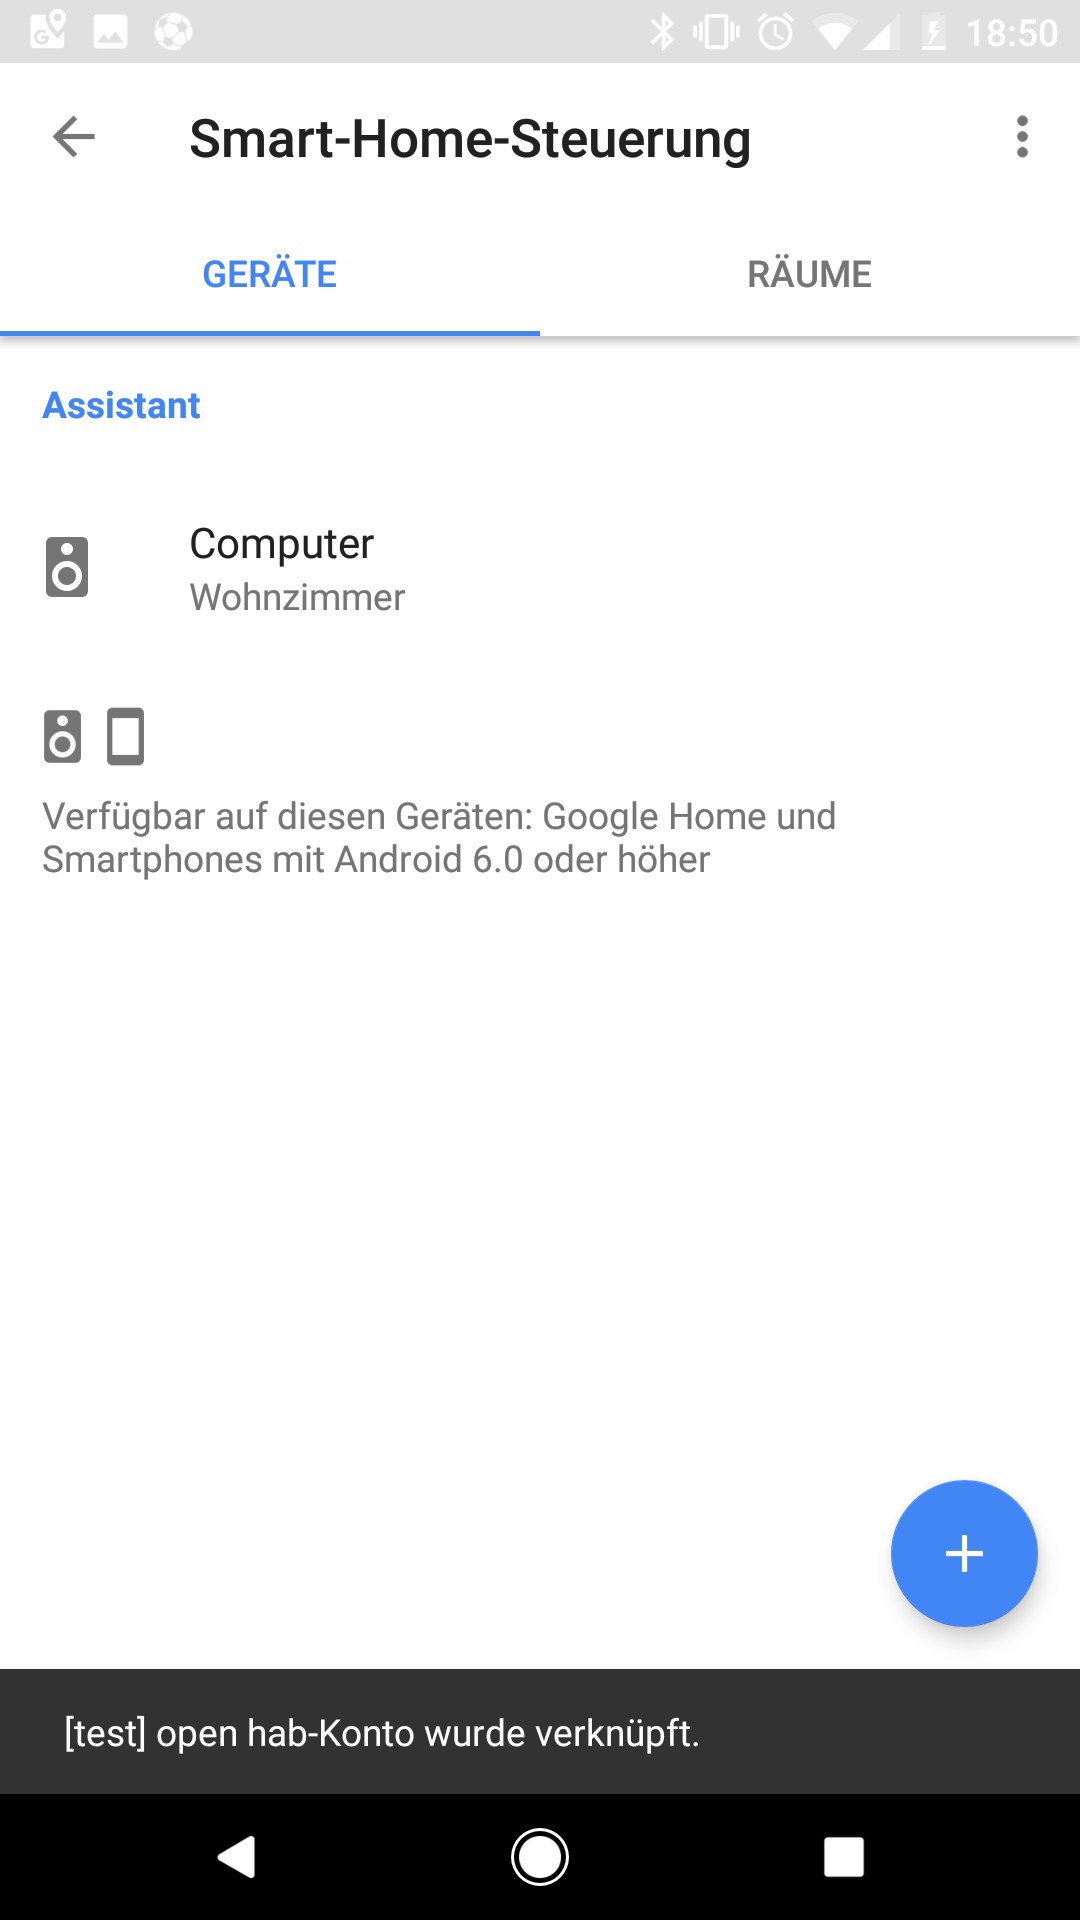 Linking Openhab With Google Home Does Not Show Any Devices Issue